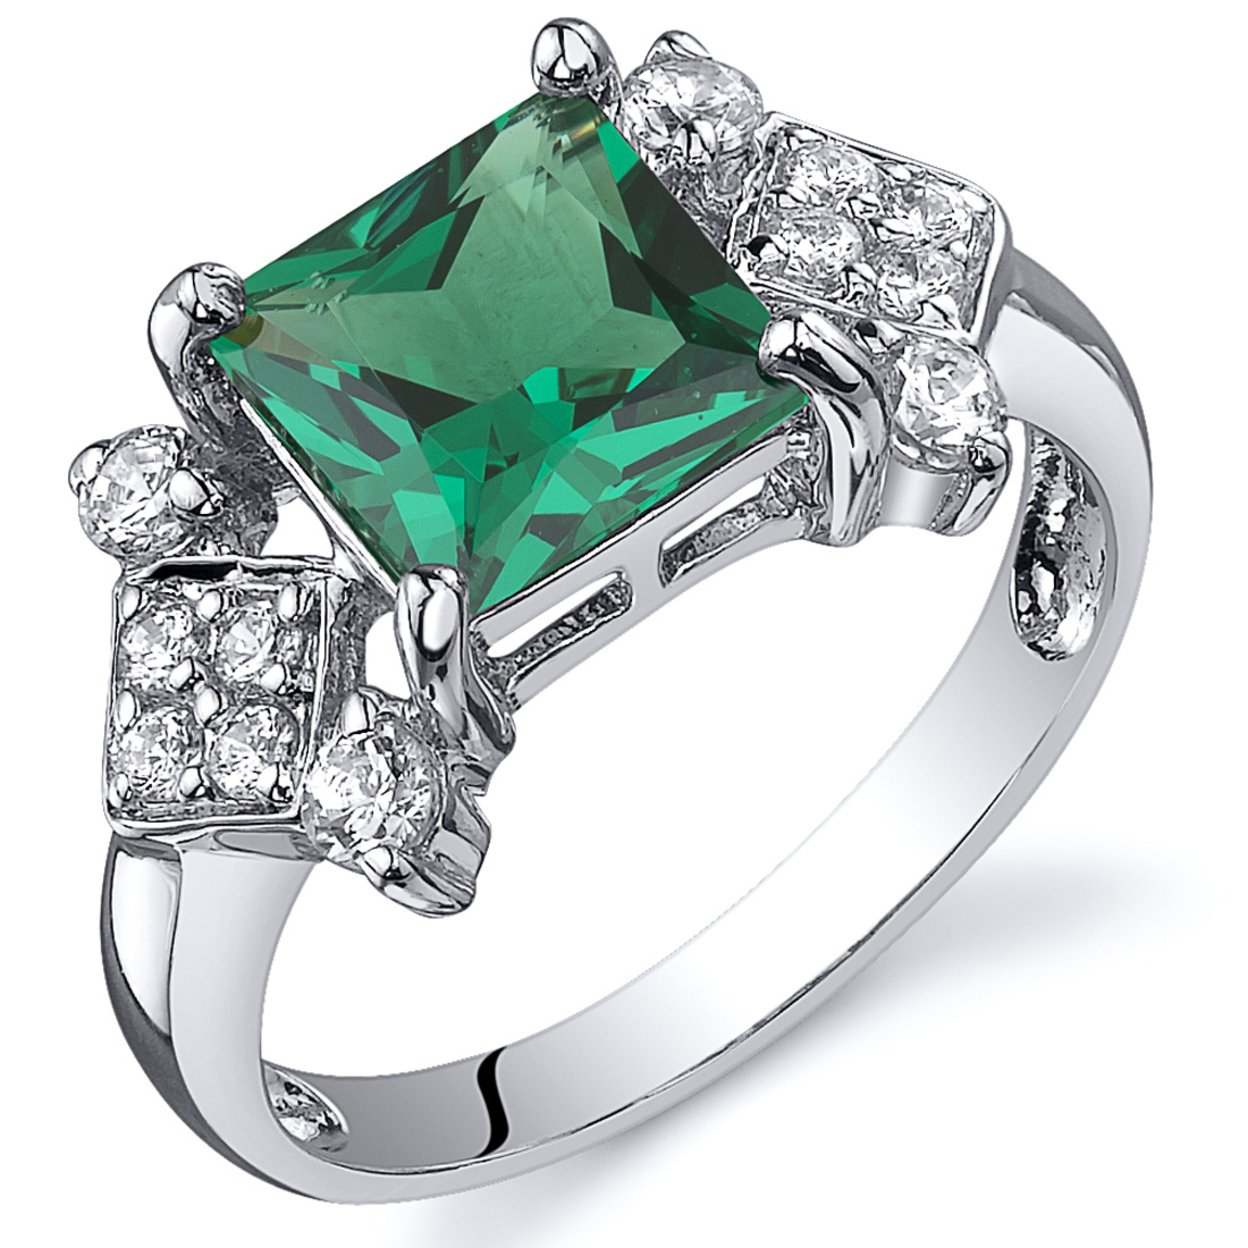 Oravo 1.50 Ct Princess Cut Simulated Emerald Ring In Rhodium-plated Sterling Silver, Sizes 5-9